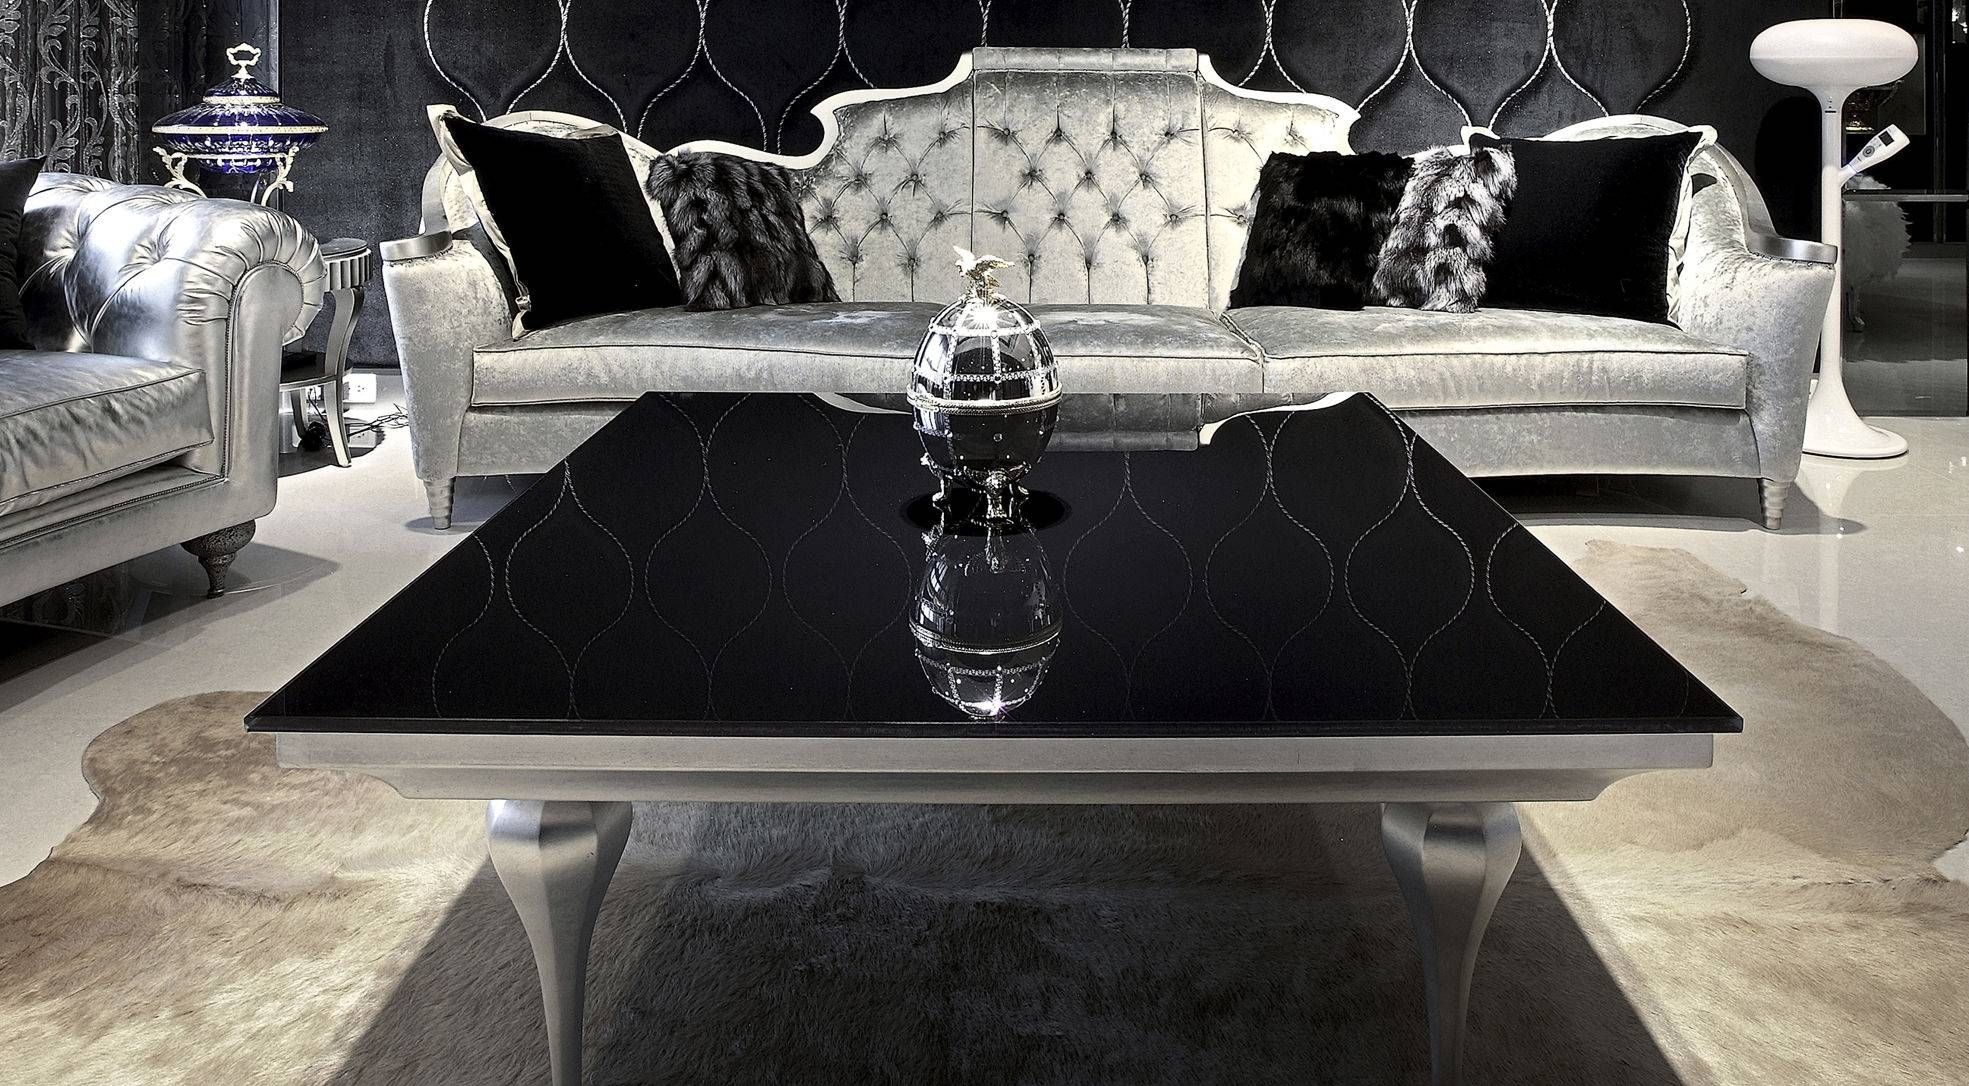 Angenehm Coffee Table Home Design With Granite Tables Marble Intended For Glass And Silver Coffee Tables (View 1 of 30)